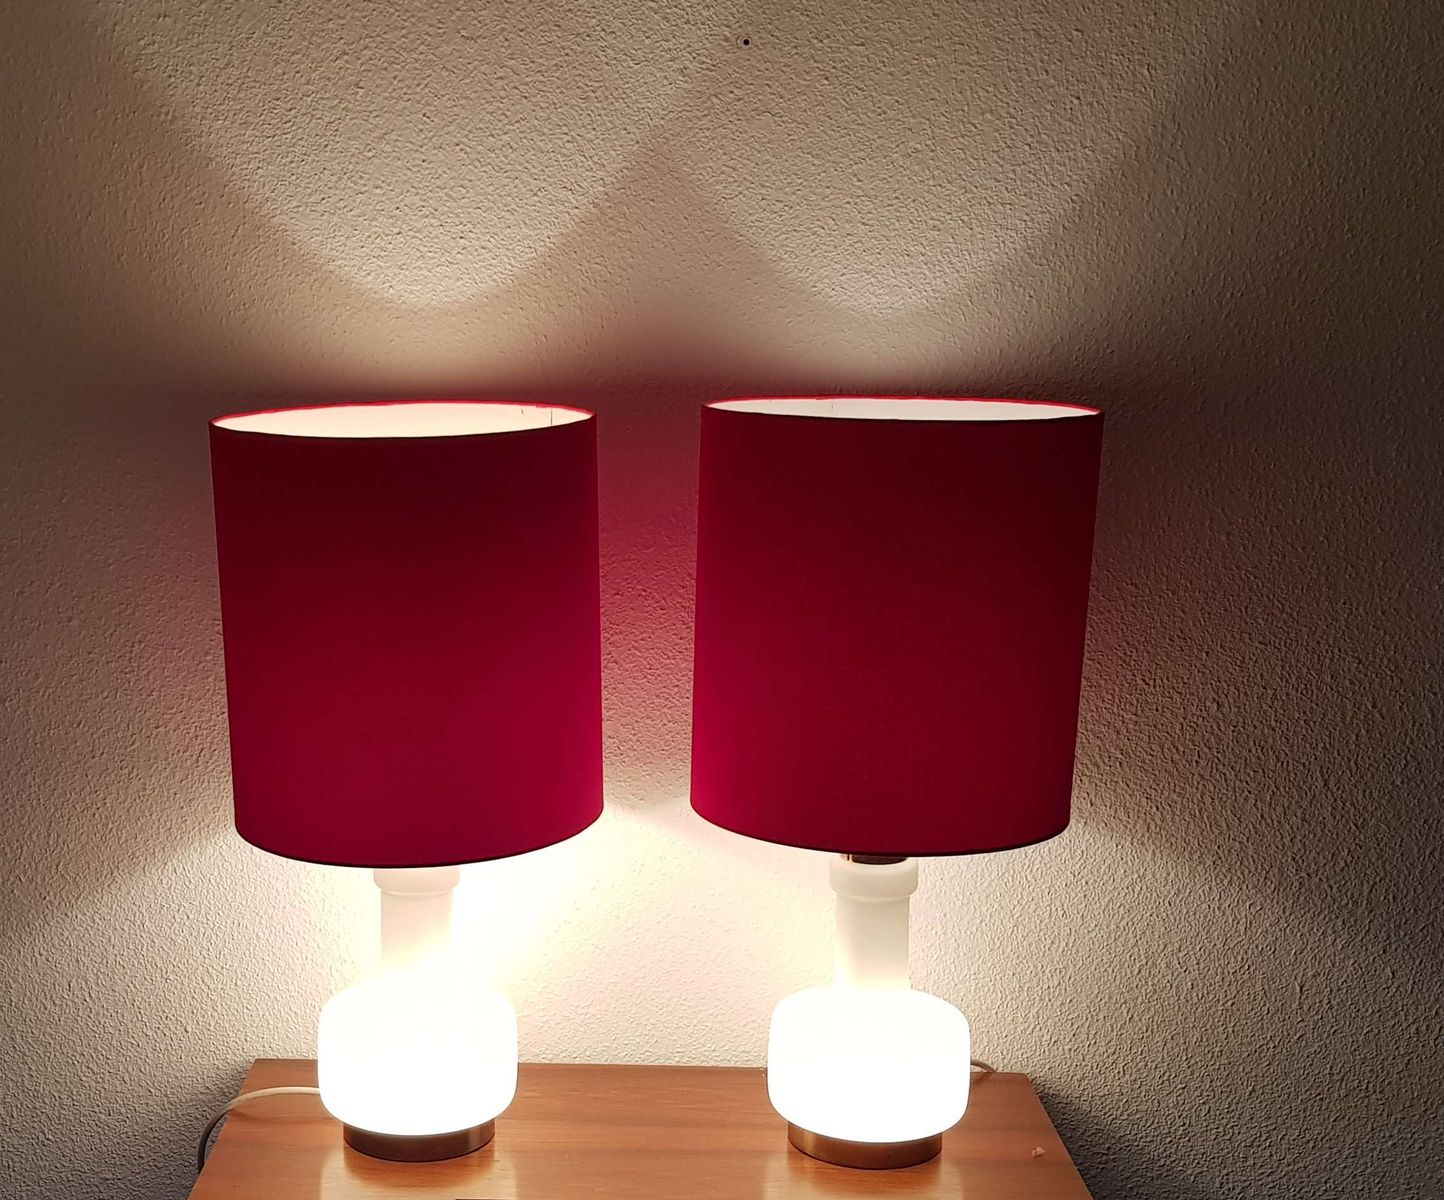 Glass Lamp Bases South Africa: Milk Glass Lamps With Illuminated Base And Red Shade